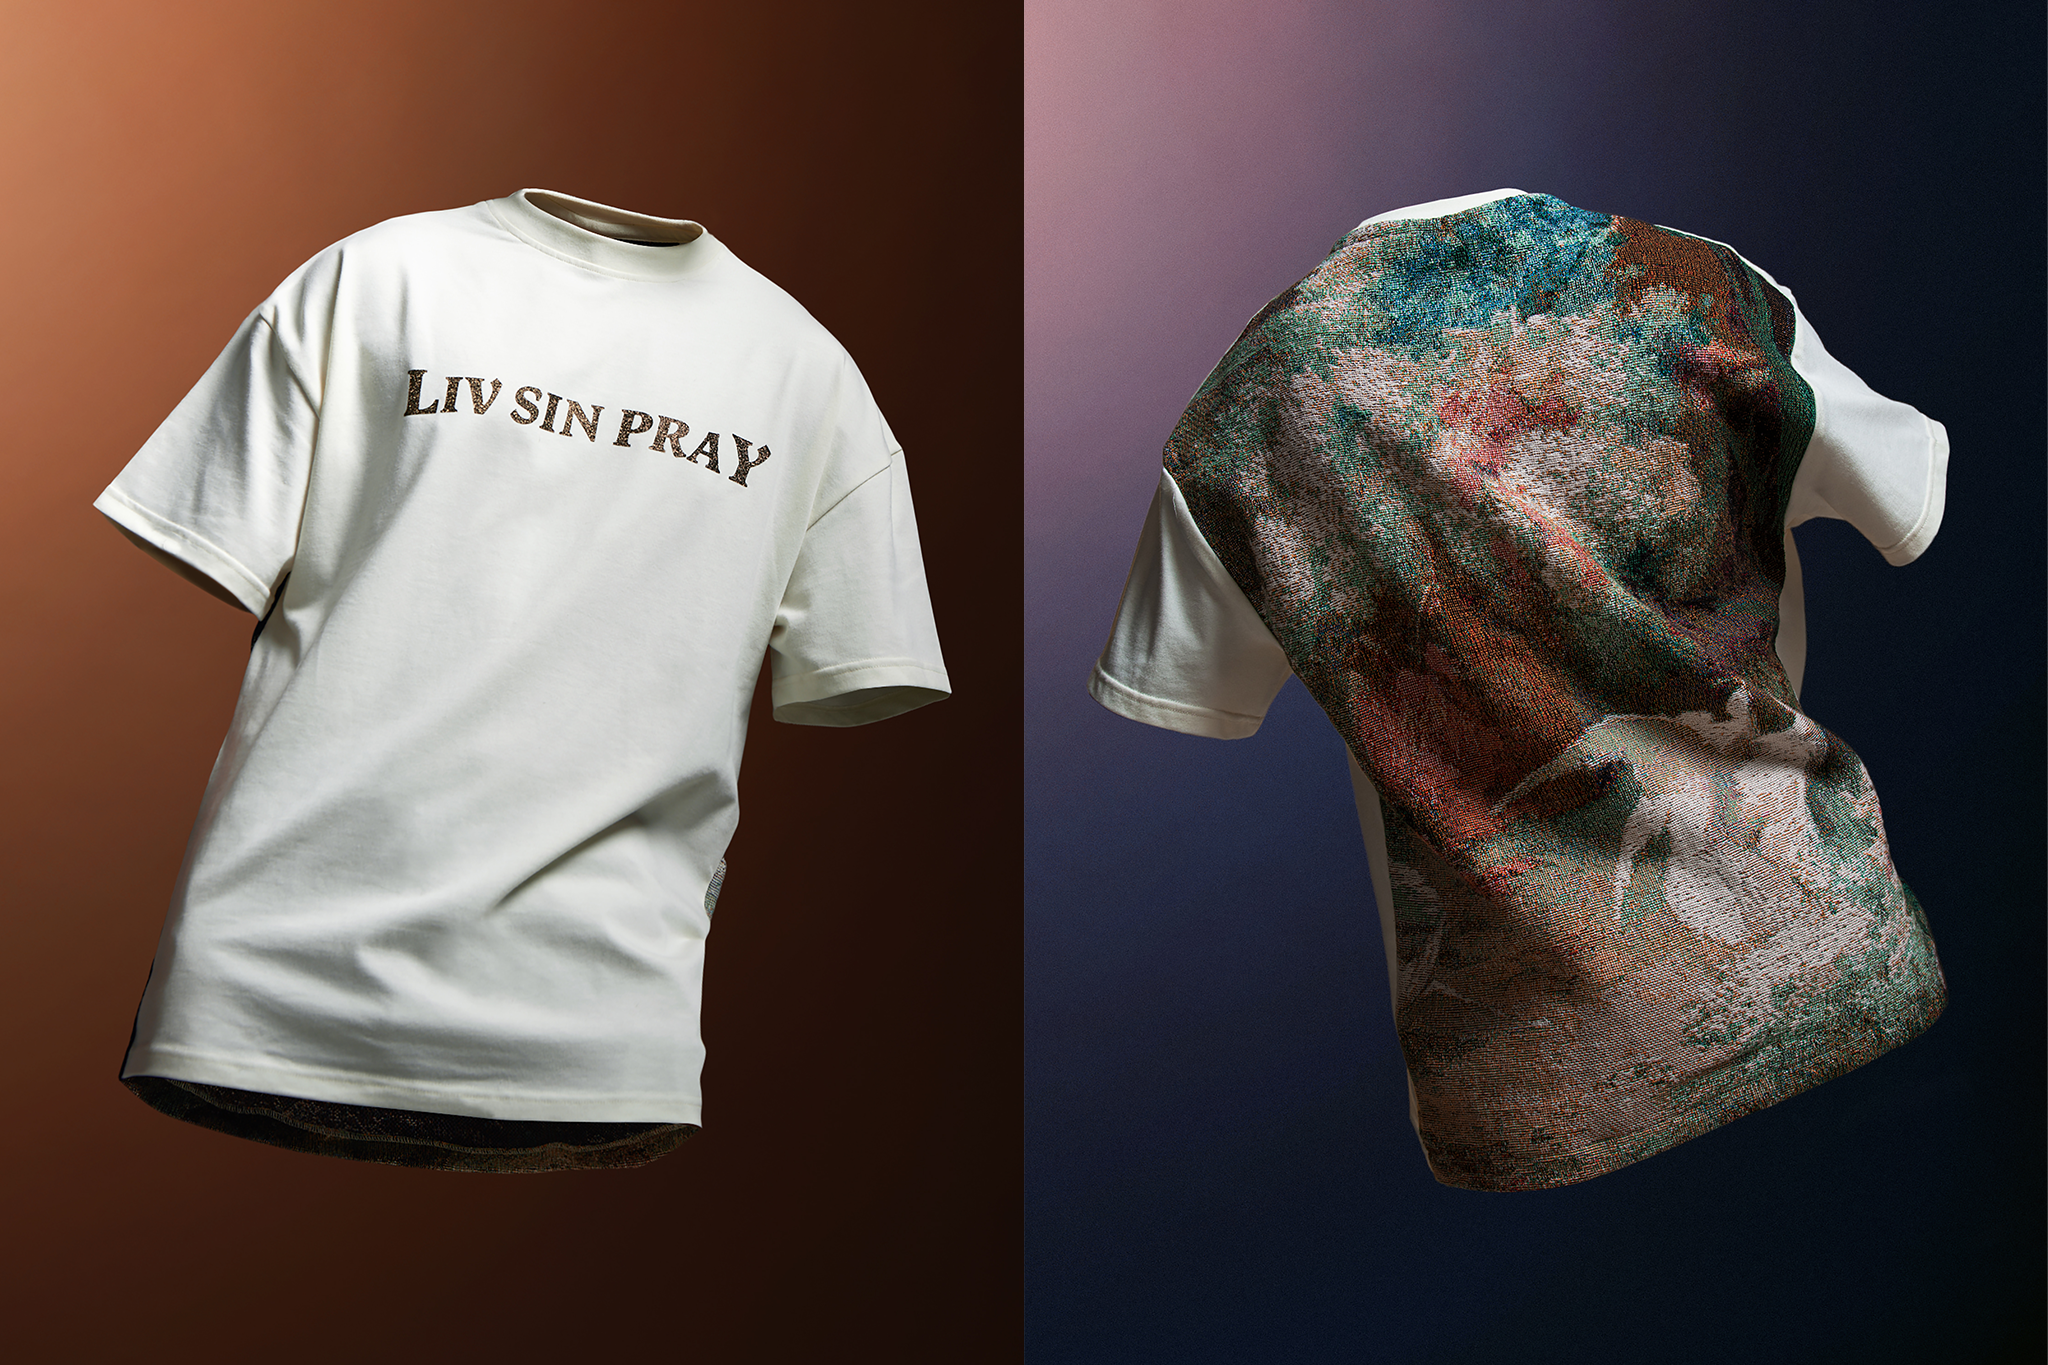 LIV SIN PRAY Capture the Quintessence of 'Le Printemps' in Debut Collection